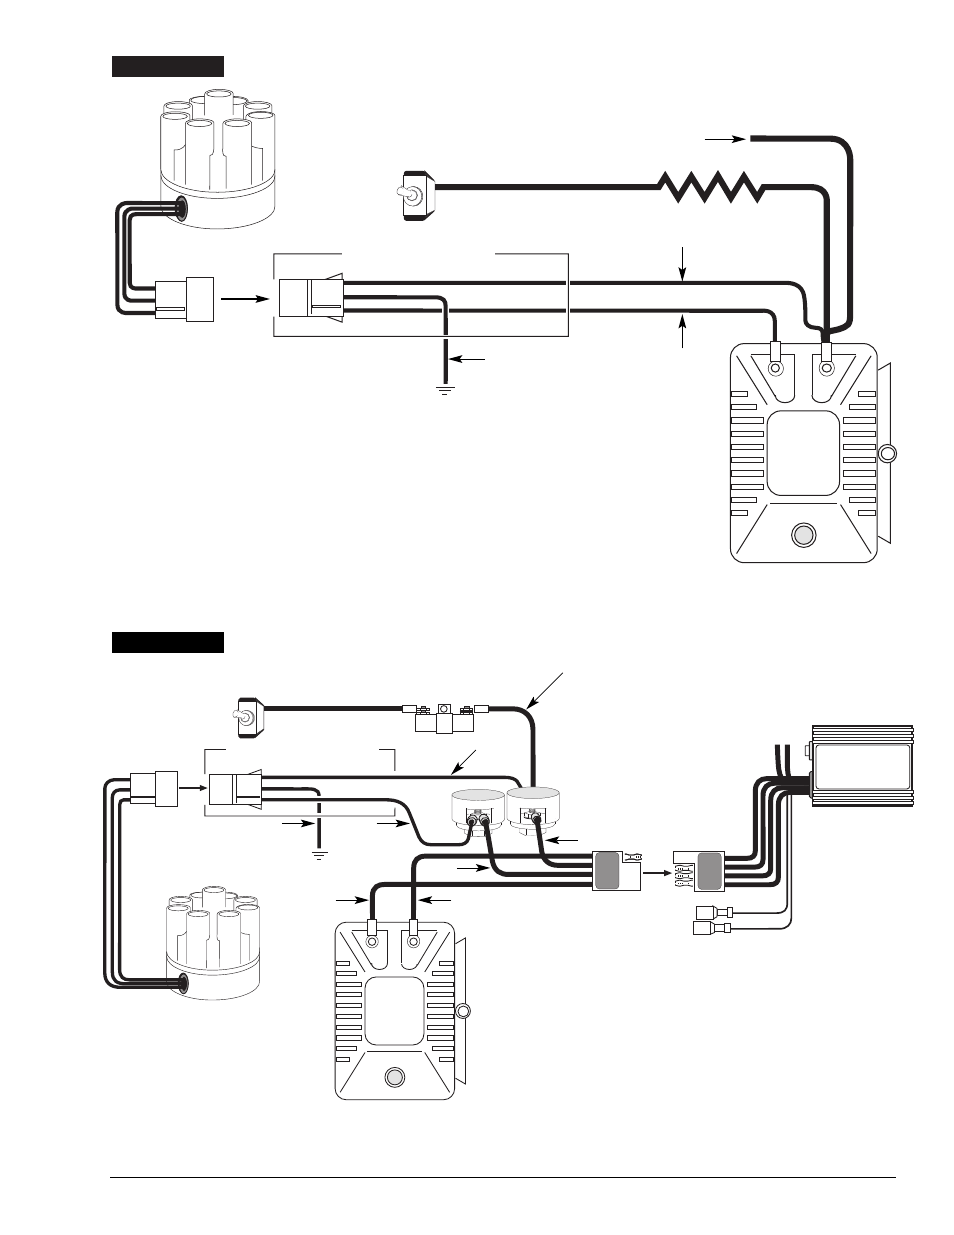 Mallory Ignition Wiring Diagram Unilite Wiring Diagrams \u2022 Mopar  Ignition Wiring Diagram 3748201 Mallory Ignition Wiring Diagrams